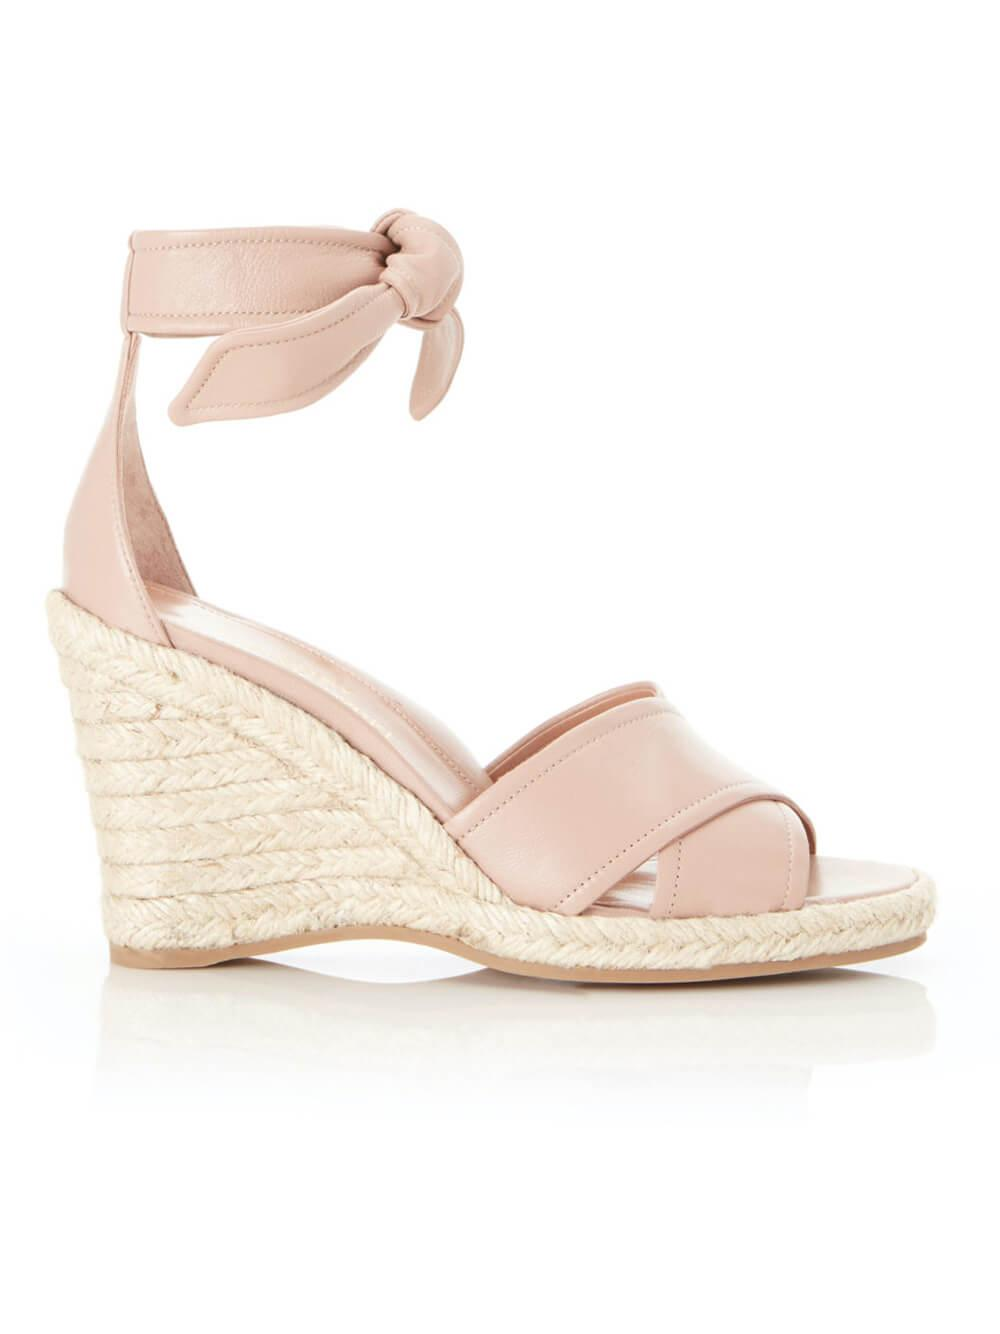 Leah Wedge Item # LEAH WEDGE